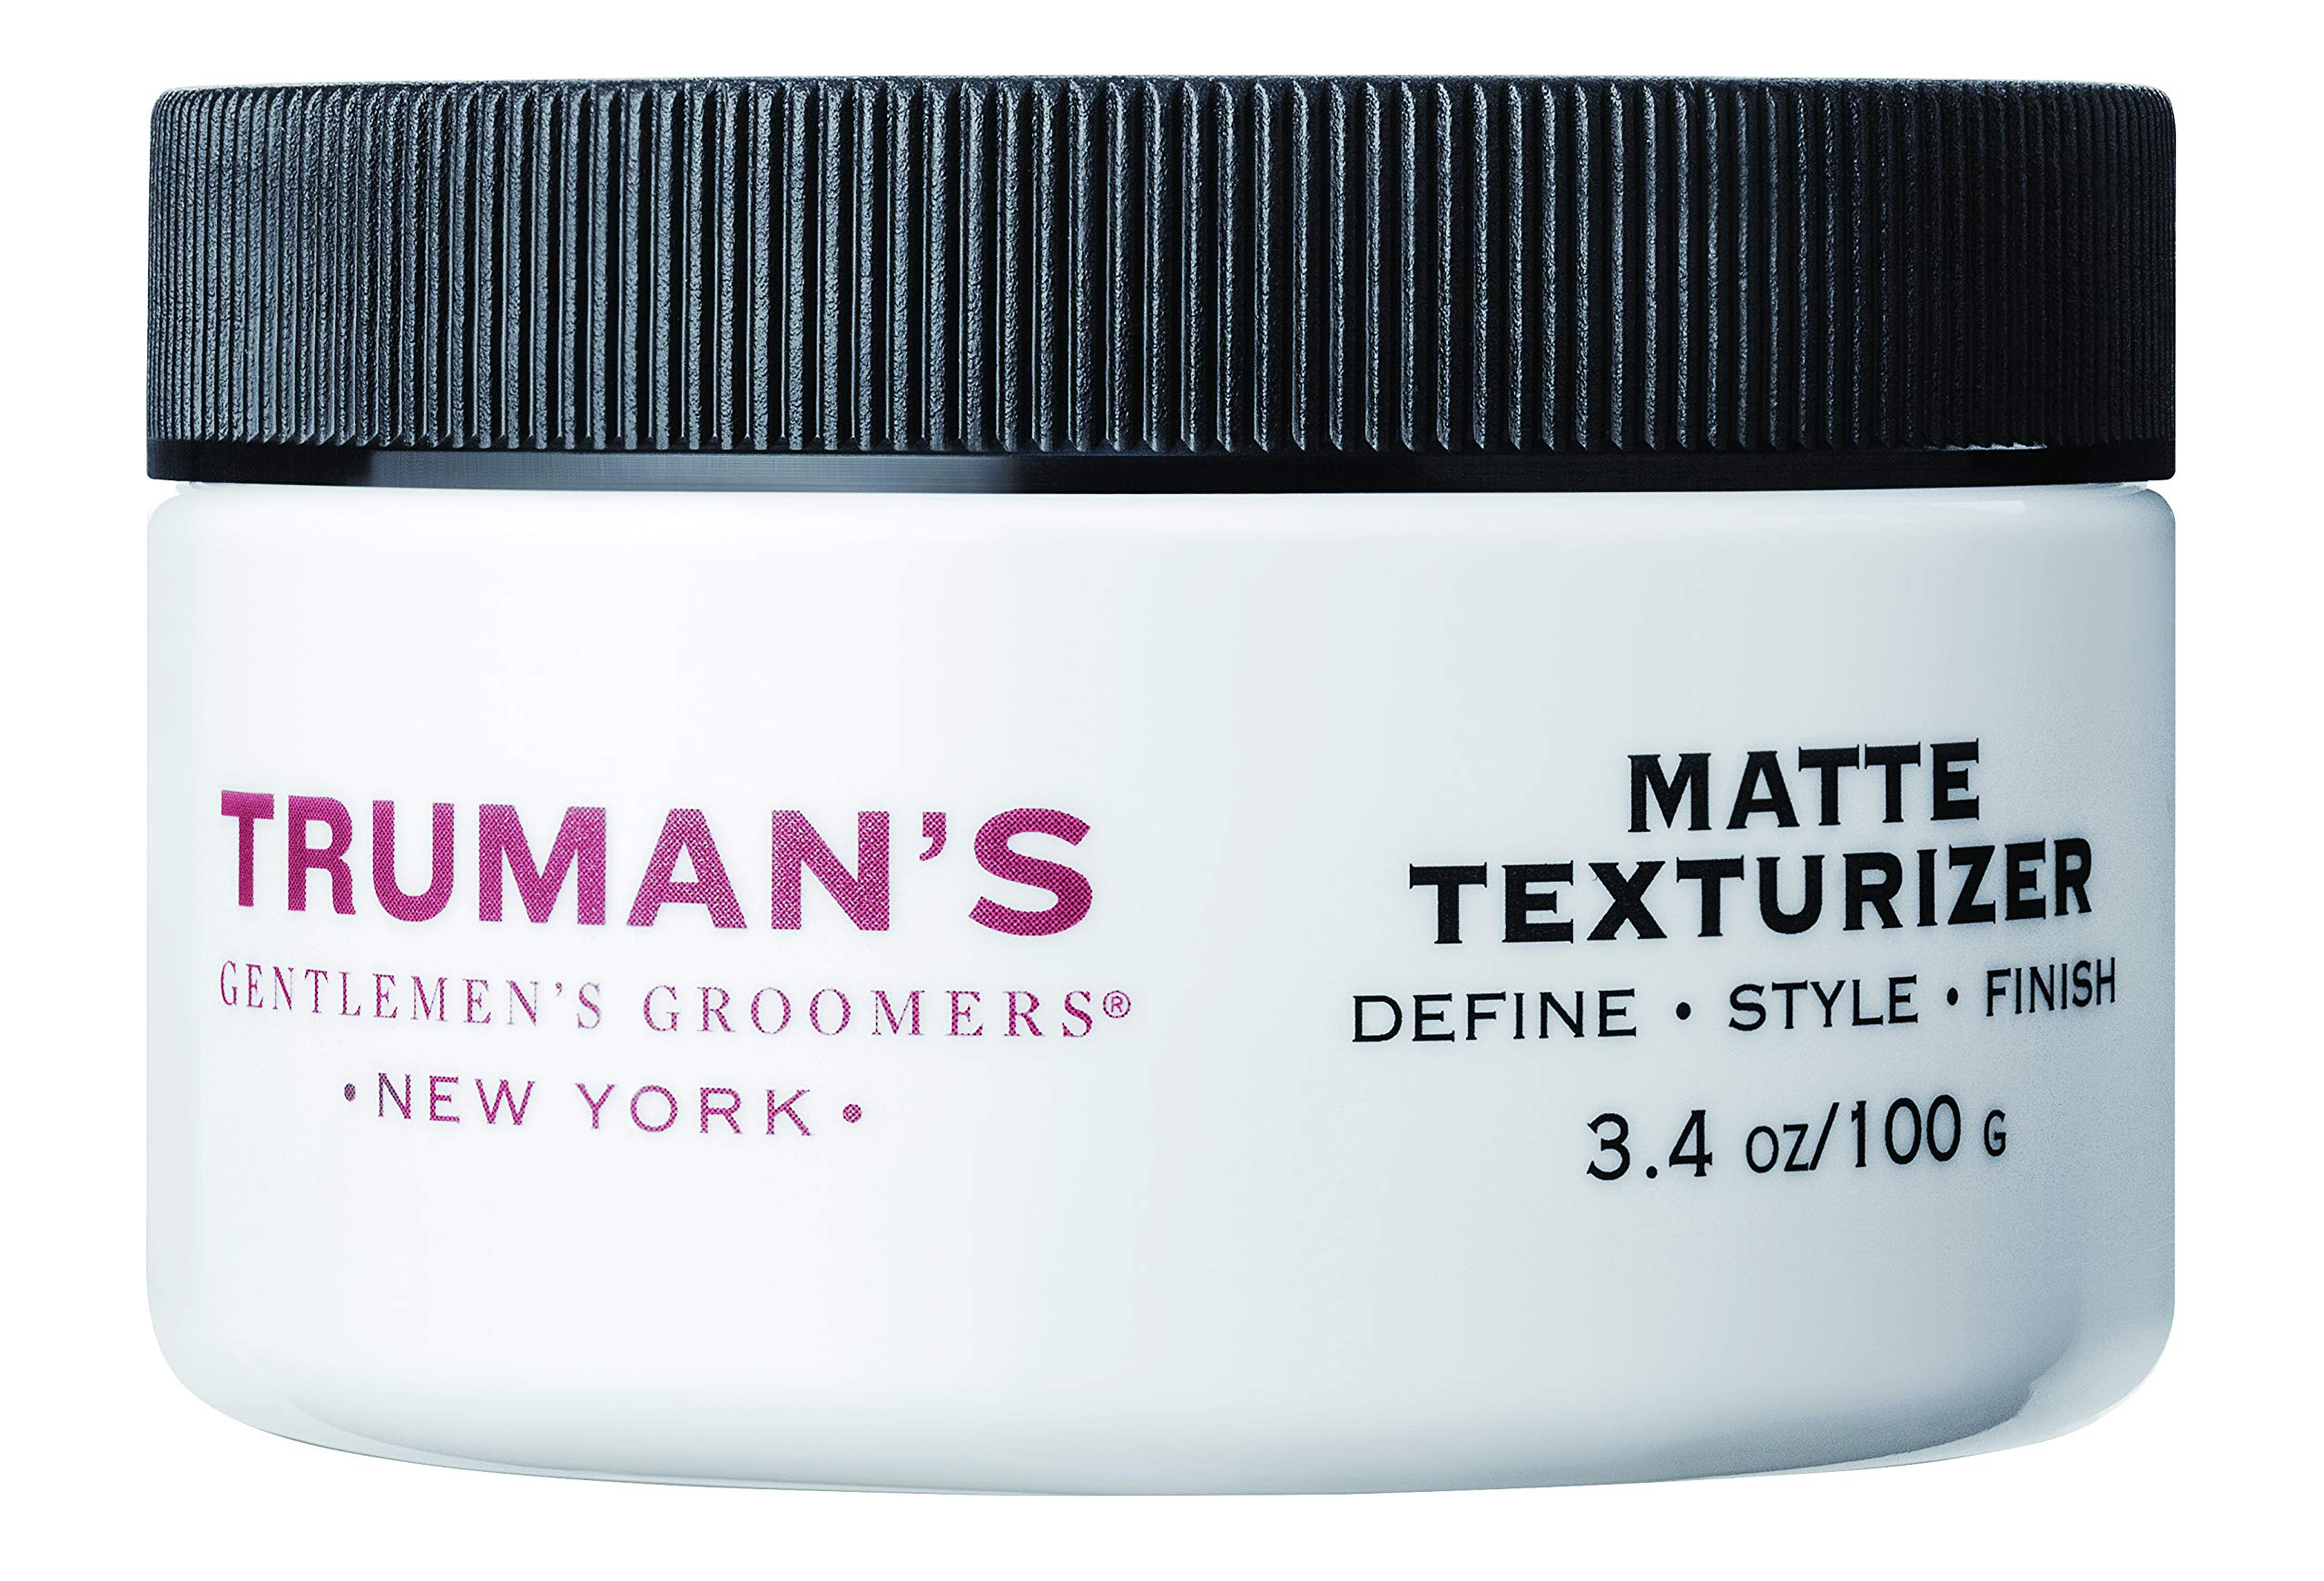 Truman's Gentlemen's Groomers Men's Matte Texturizer, Hair Styling Pomade for Medium Hold with Natural Finish Look, 3.4 oz